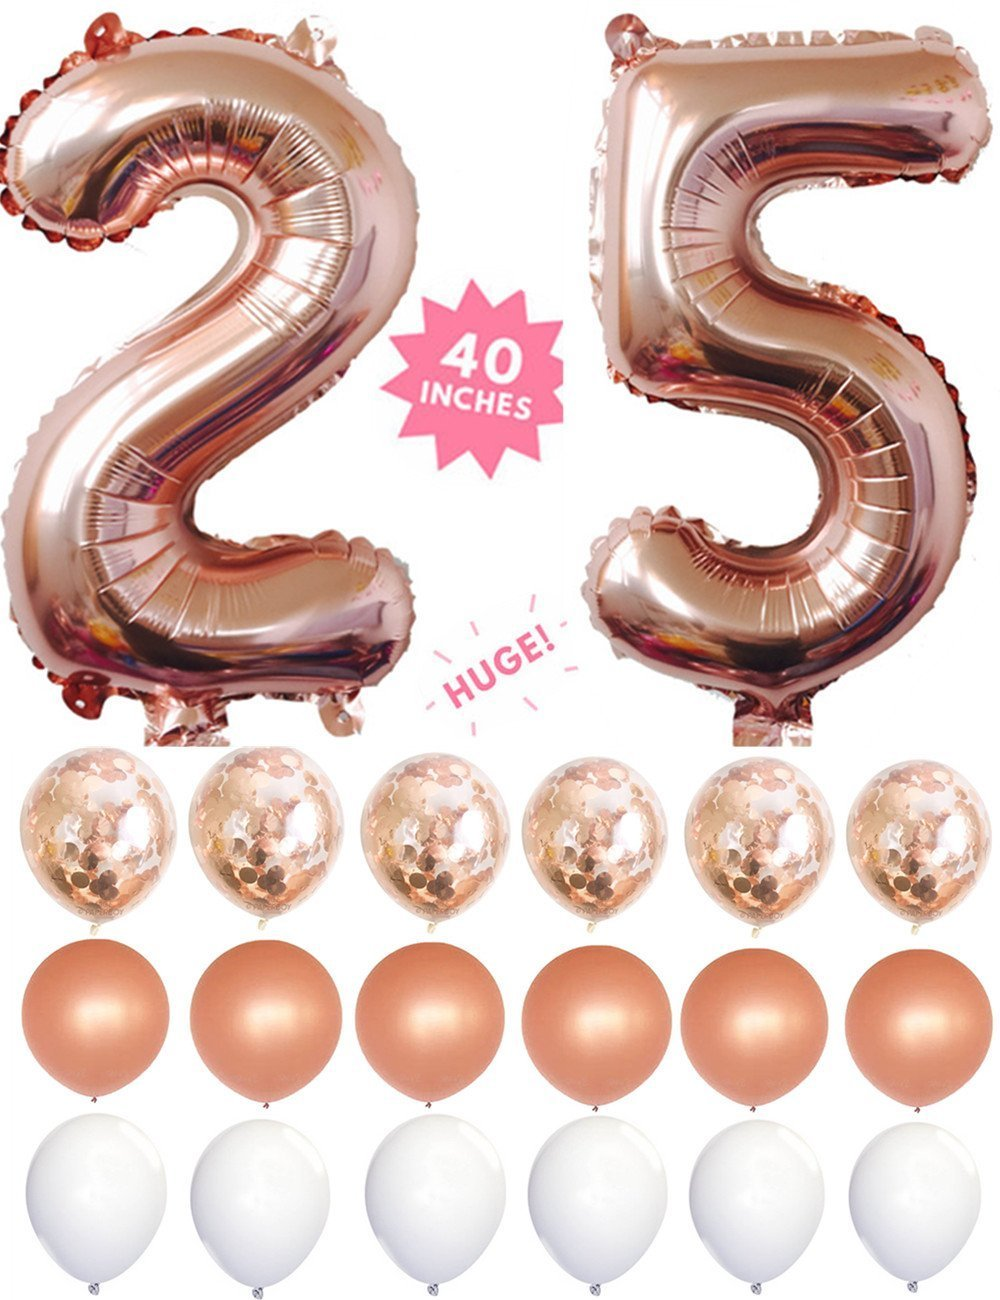 25 Rose Gold 40 Inch Huge Giant Number Balloons By Smiling Wolf Foil Confetti Latex For Anniversary25th Birthday Decorations Party